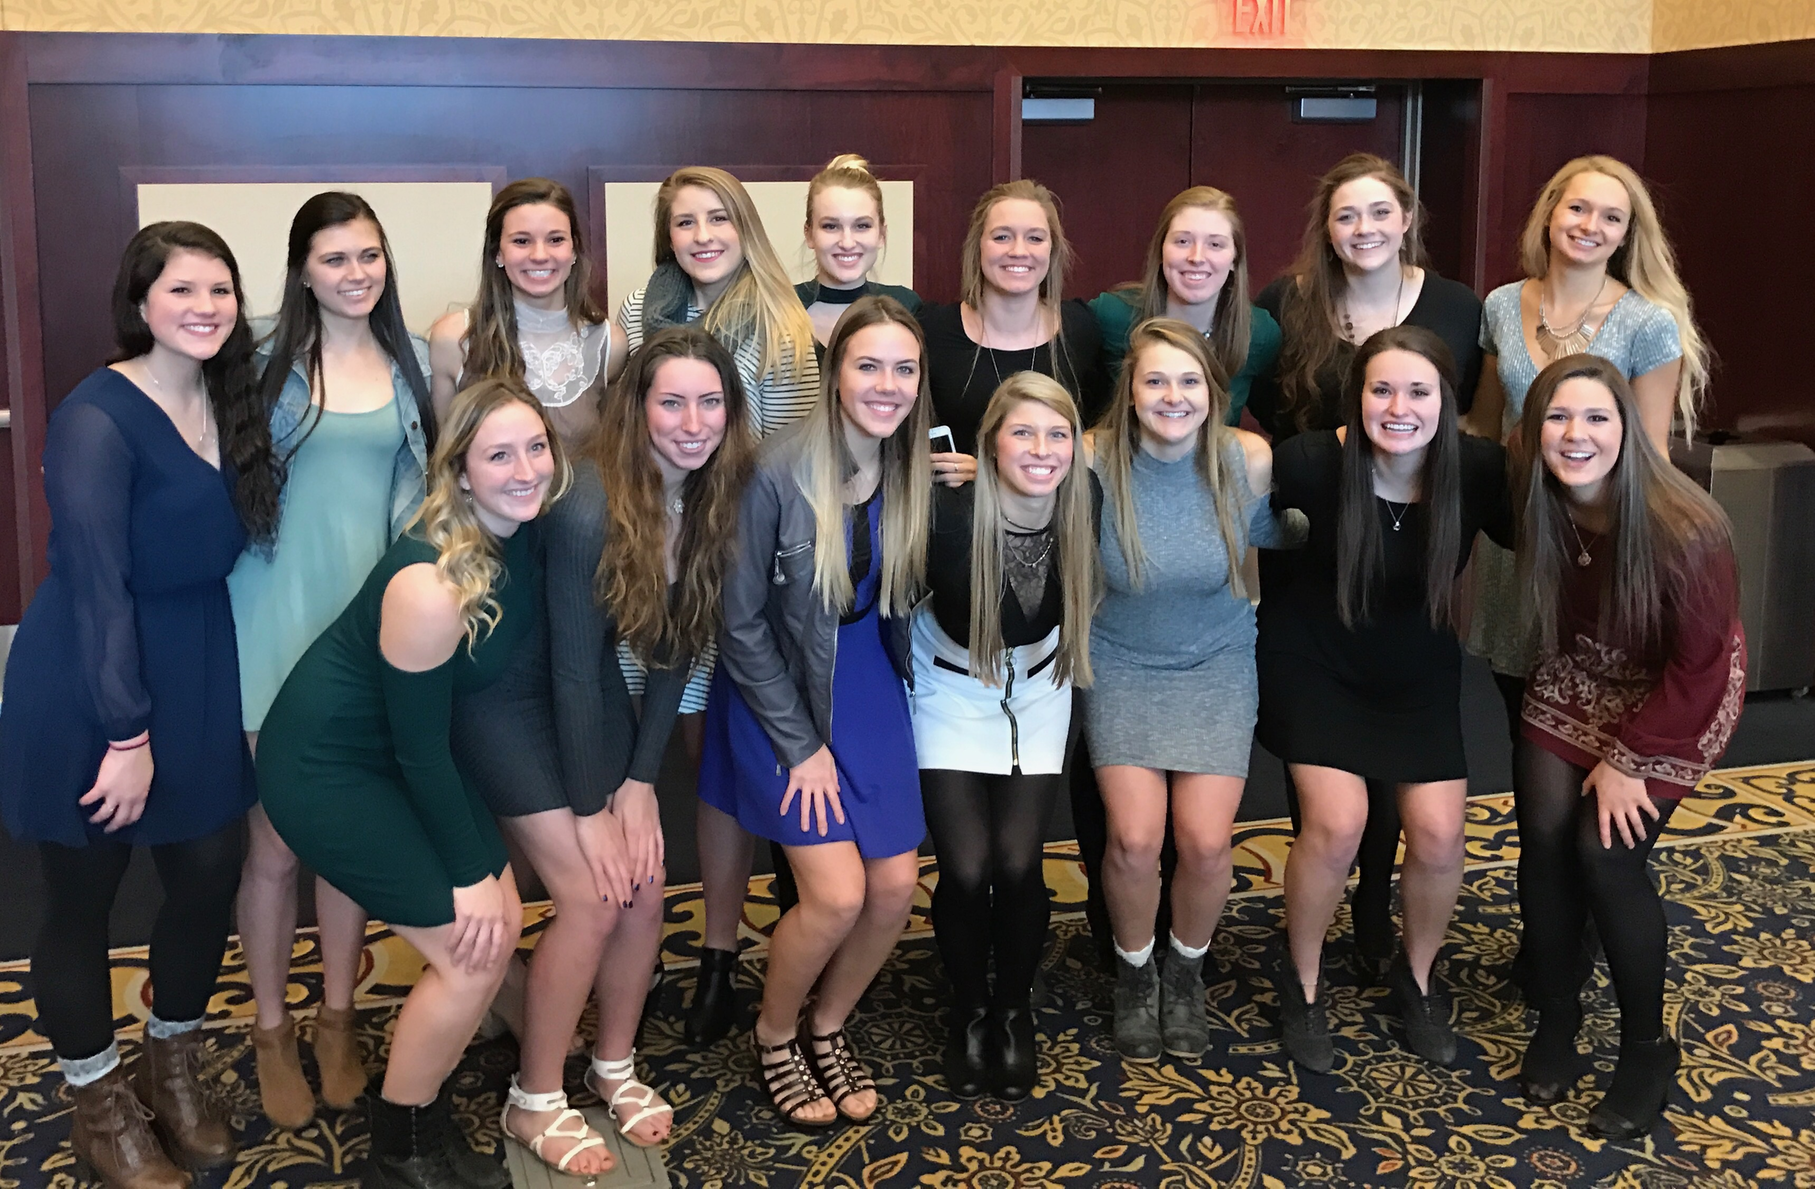 Team Award Winners Announced for Volleyball